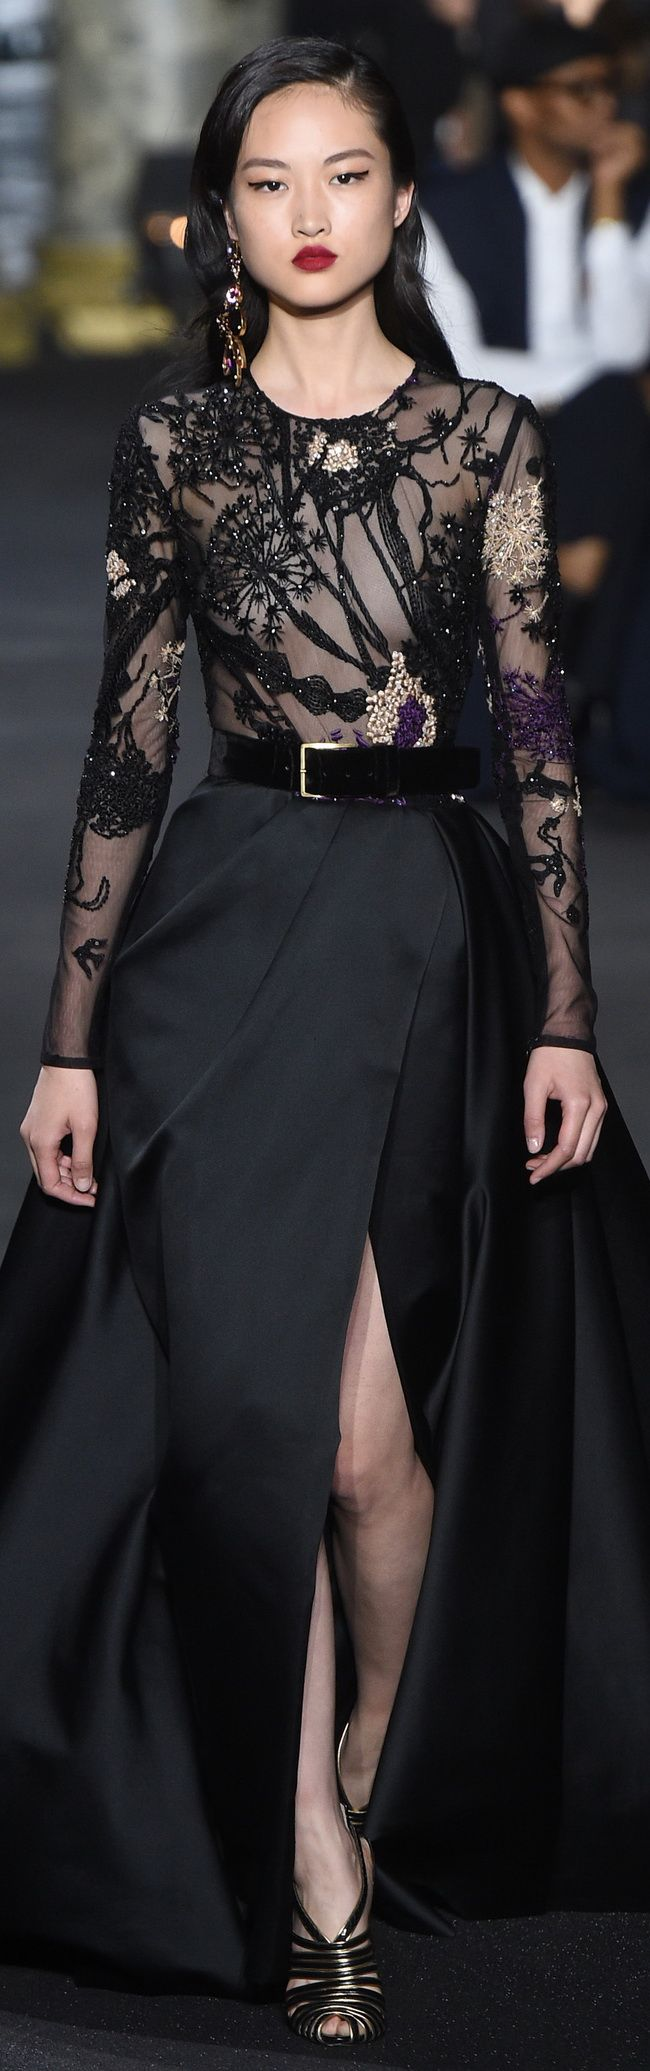 Elie Saab Winter 2016